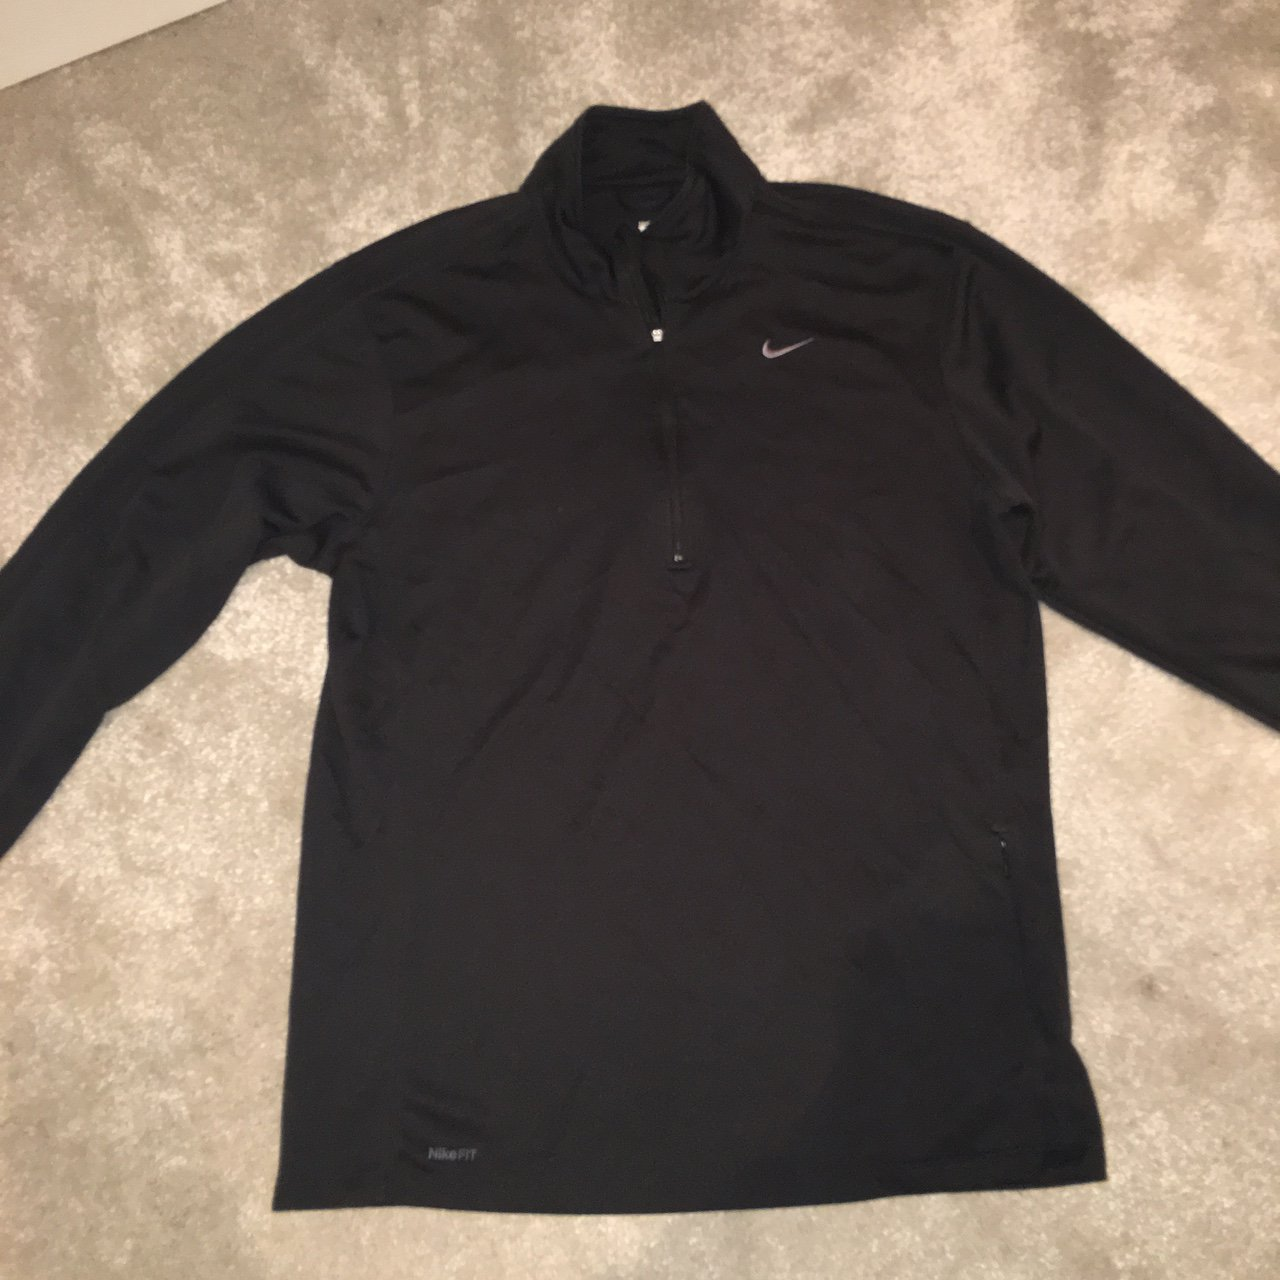 e7328bed57 Men's Nike 3/4 zip top. Size medium. Perfect for over shorts - Depop